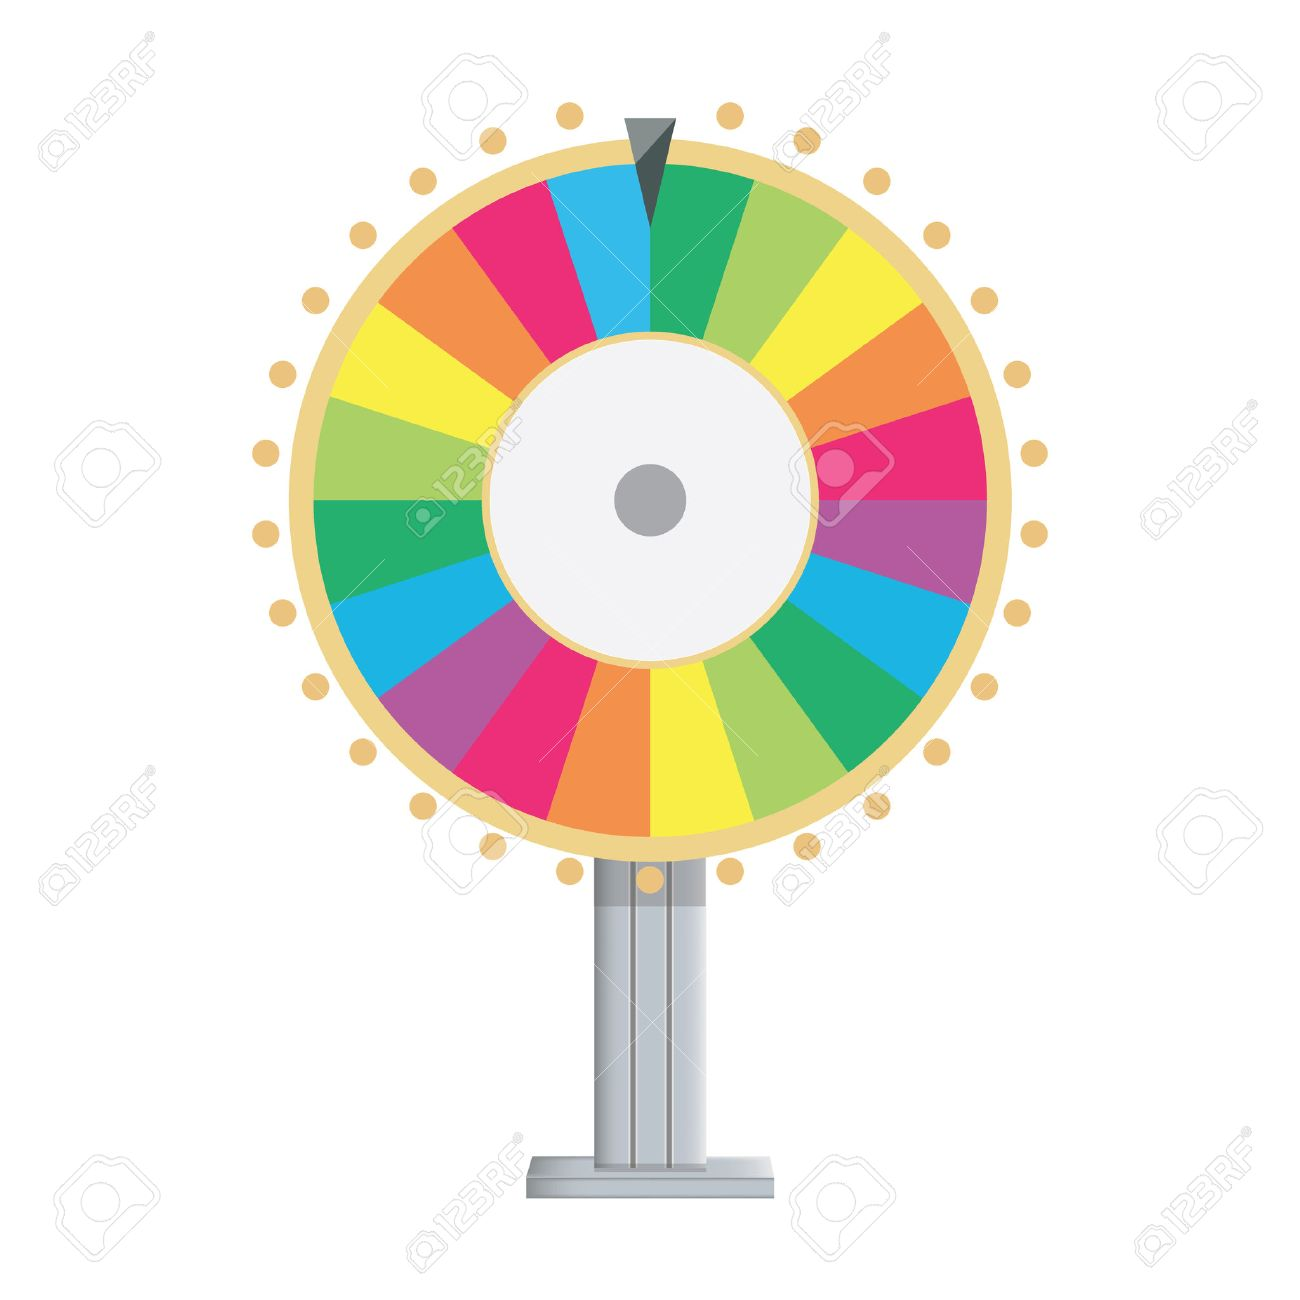 Vector illustration wheel of fortune lucky spin icon in flat style banco de imagens vector illustration wheel of fortune lucky spin icon in flat style ccuart Choice Image